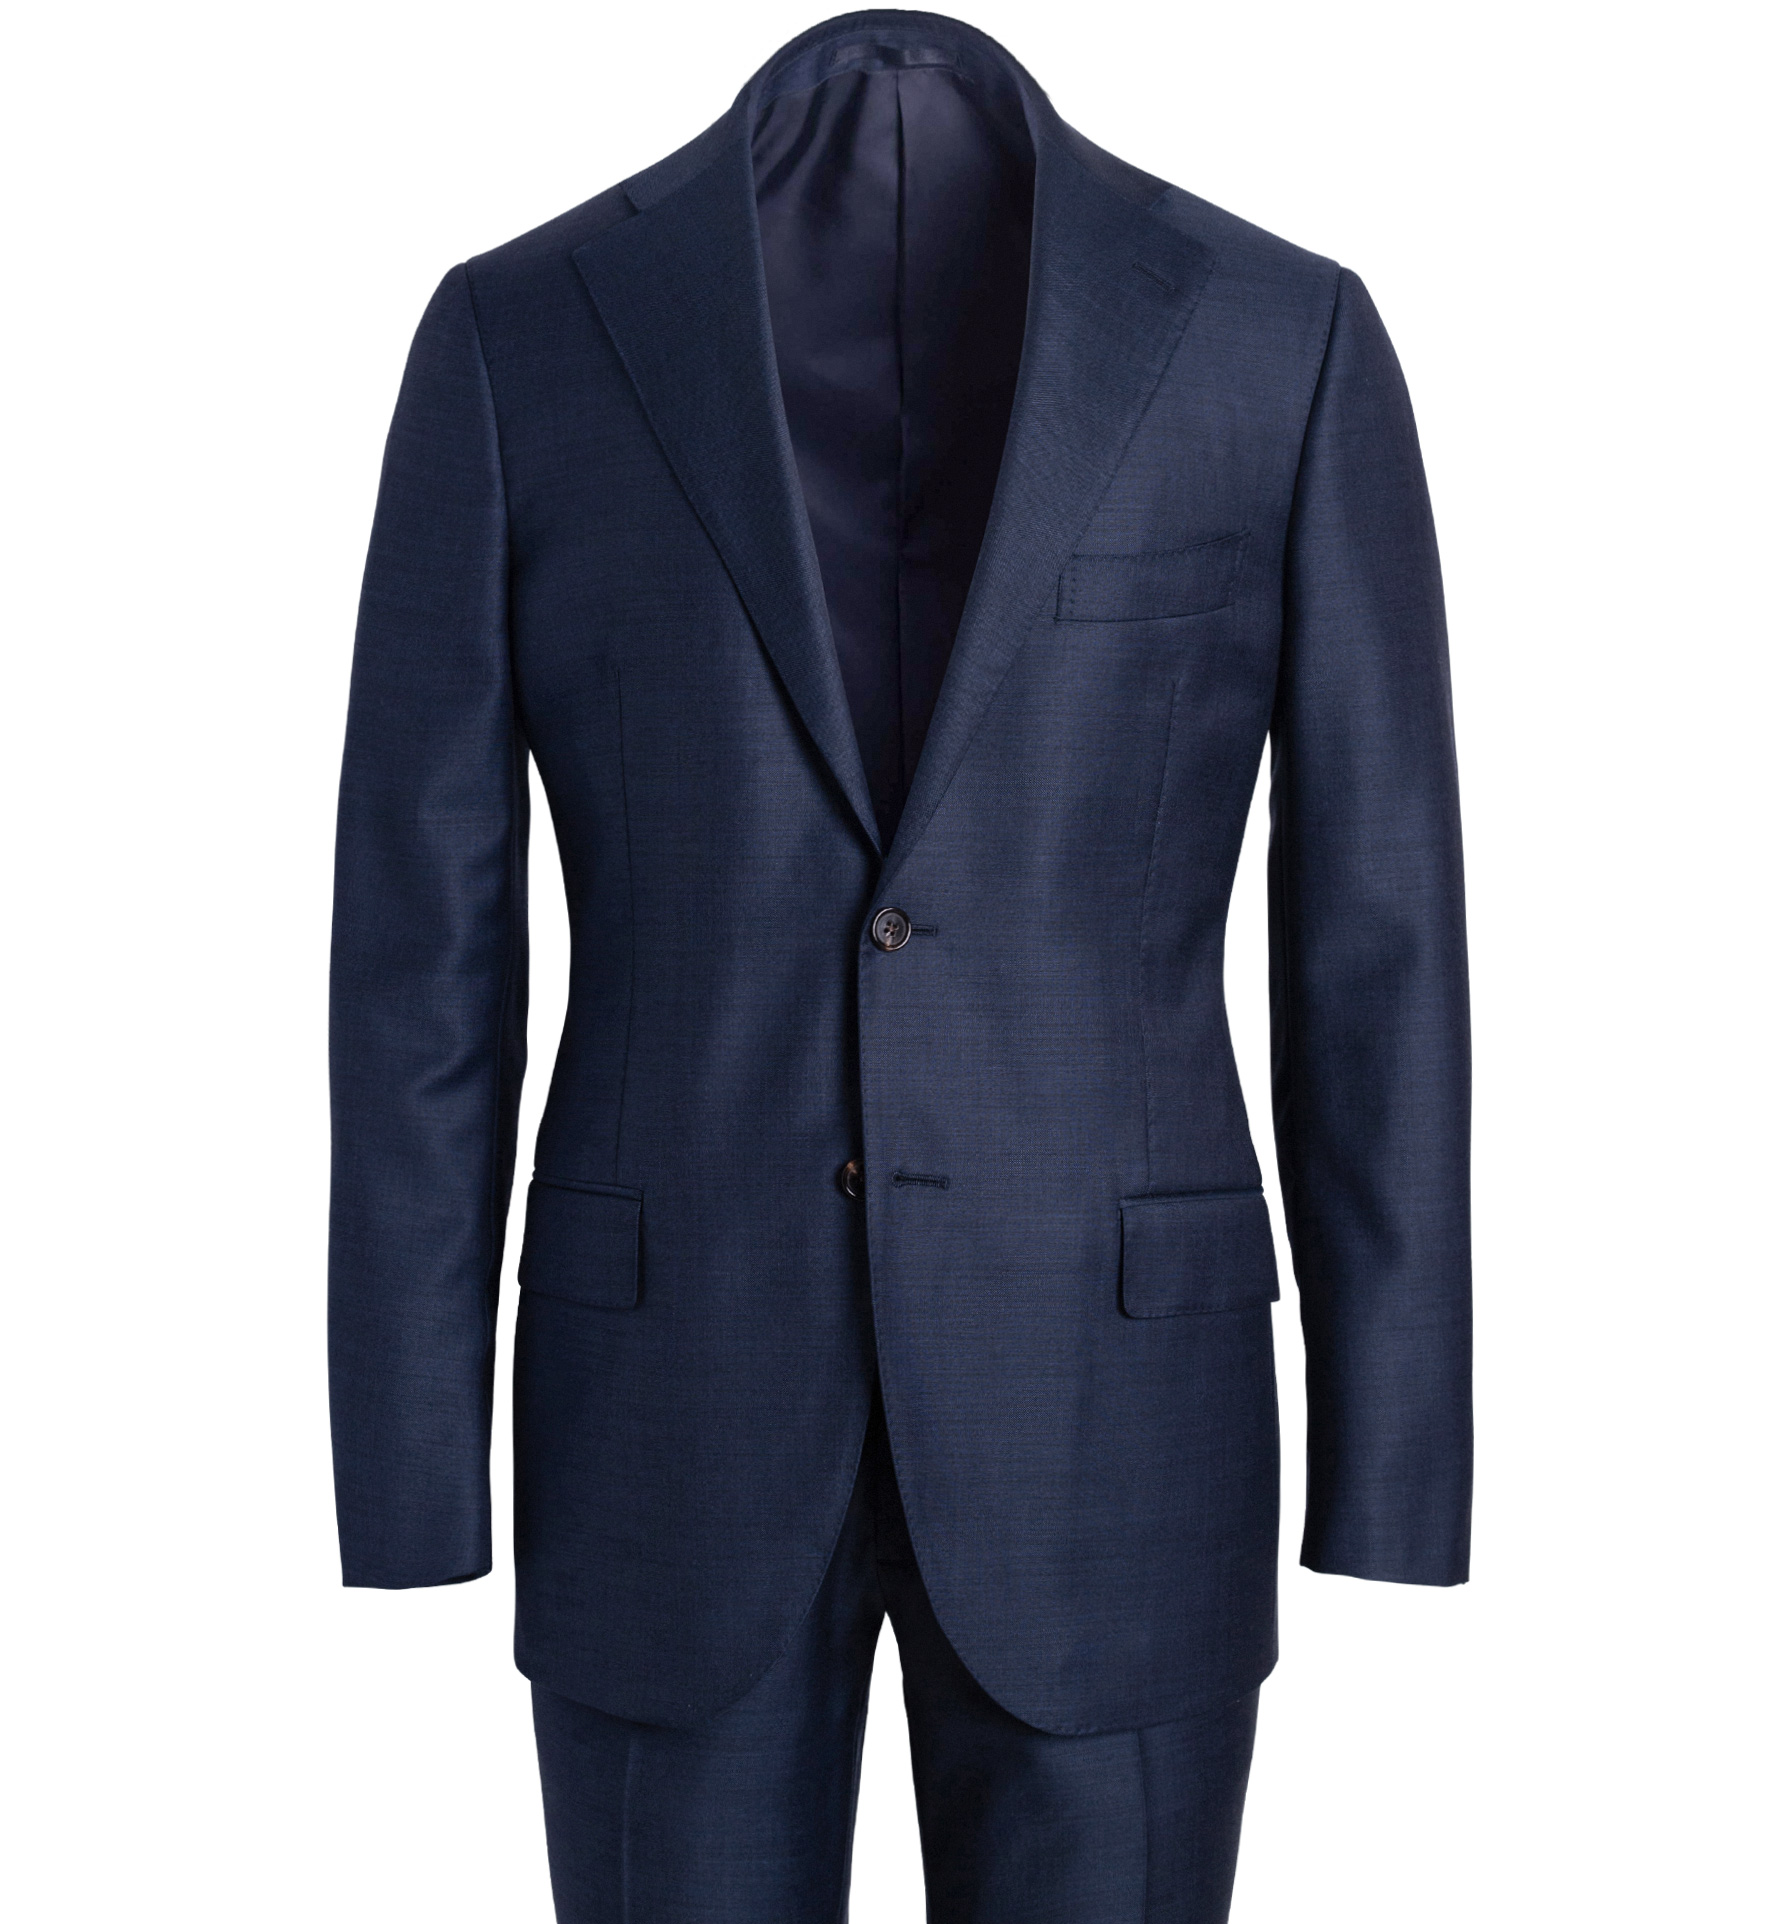 Zoom Image of Allen Blue S110s Sharkskin Suit with Cuffed Trouser